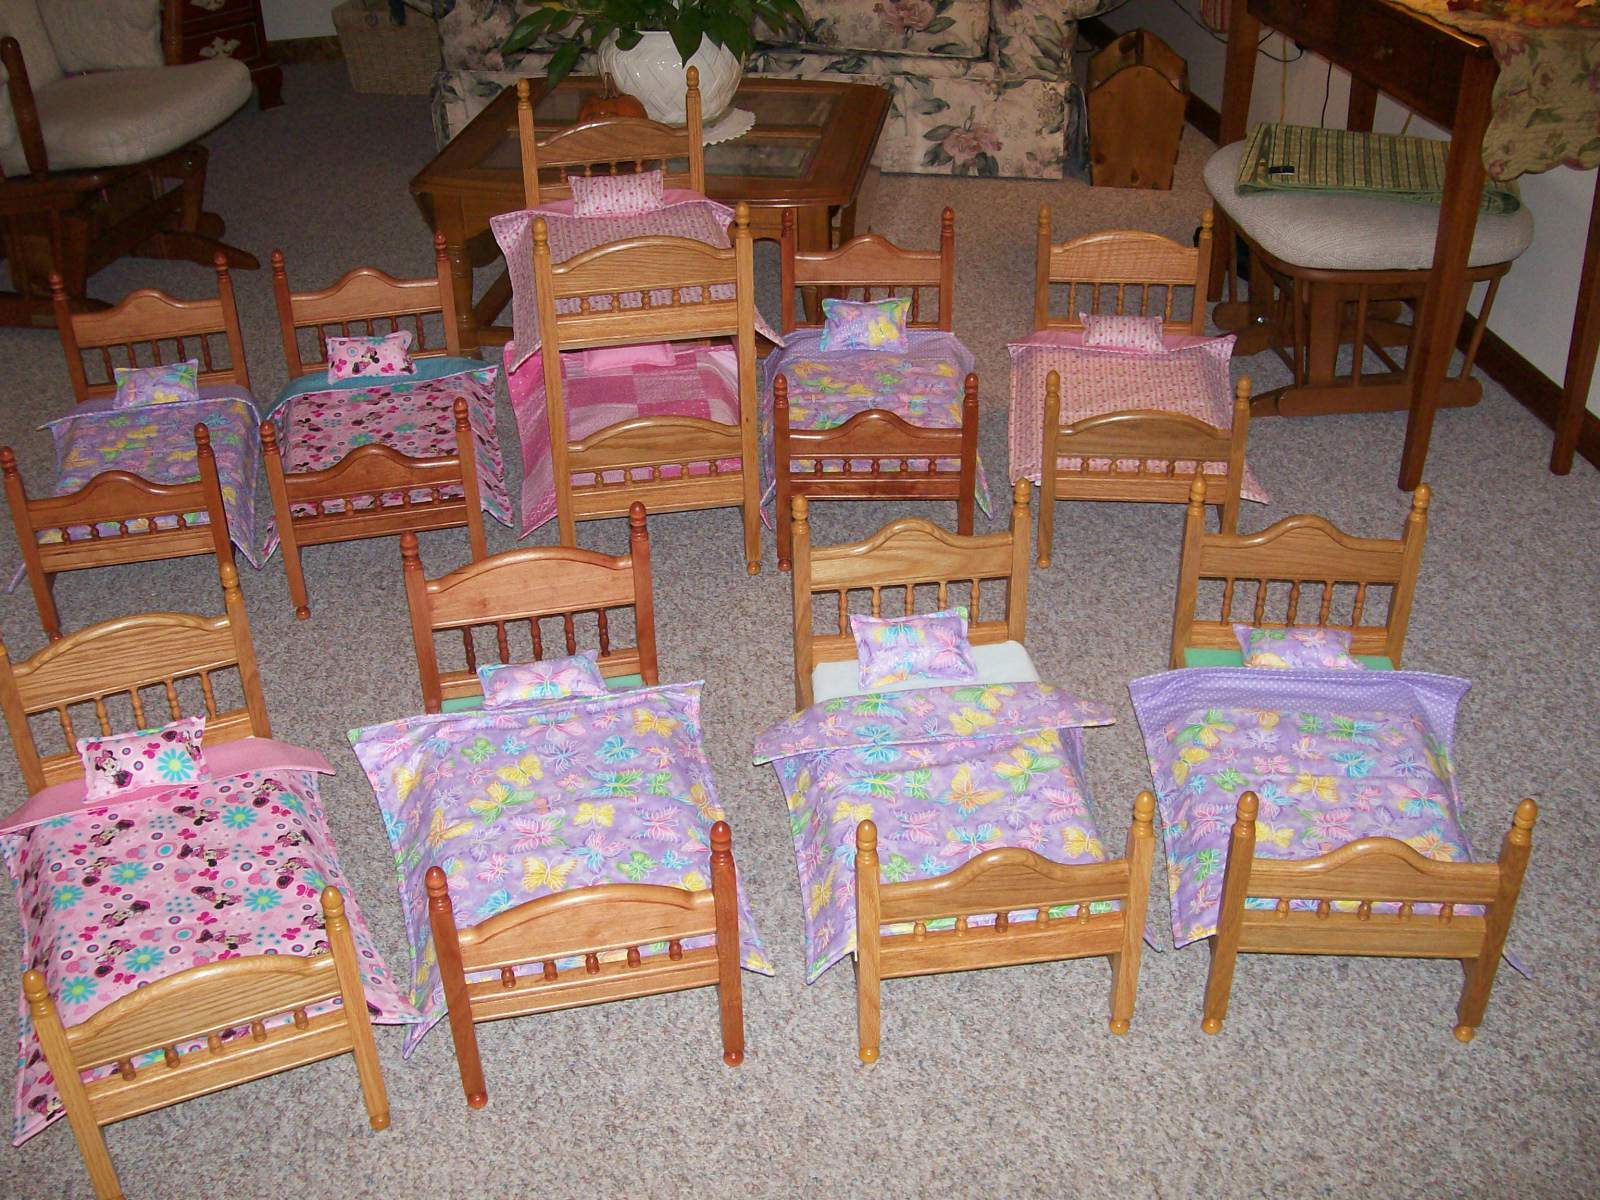 Wooden Spindles to make doll beds